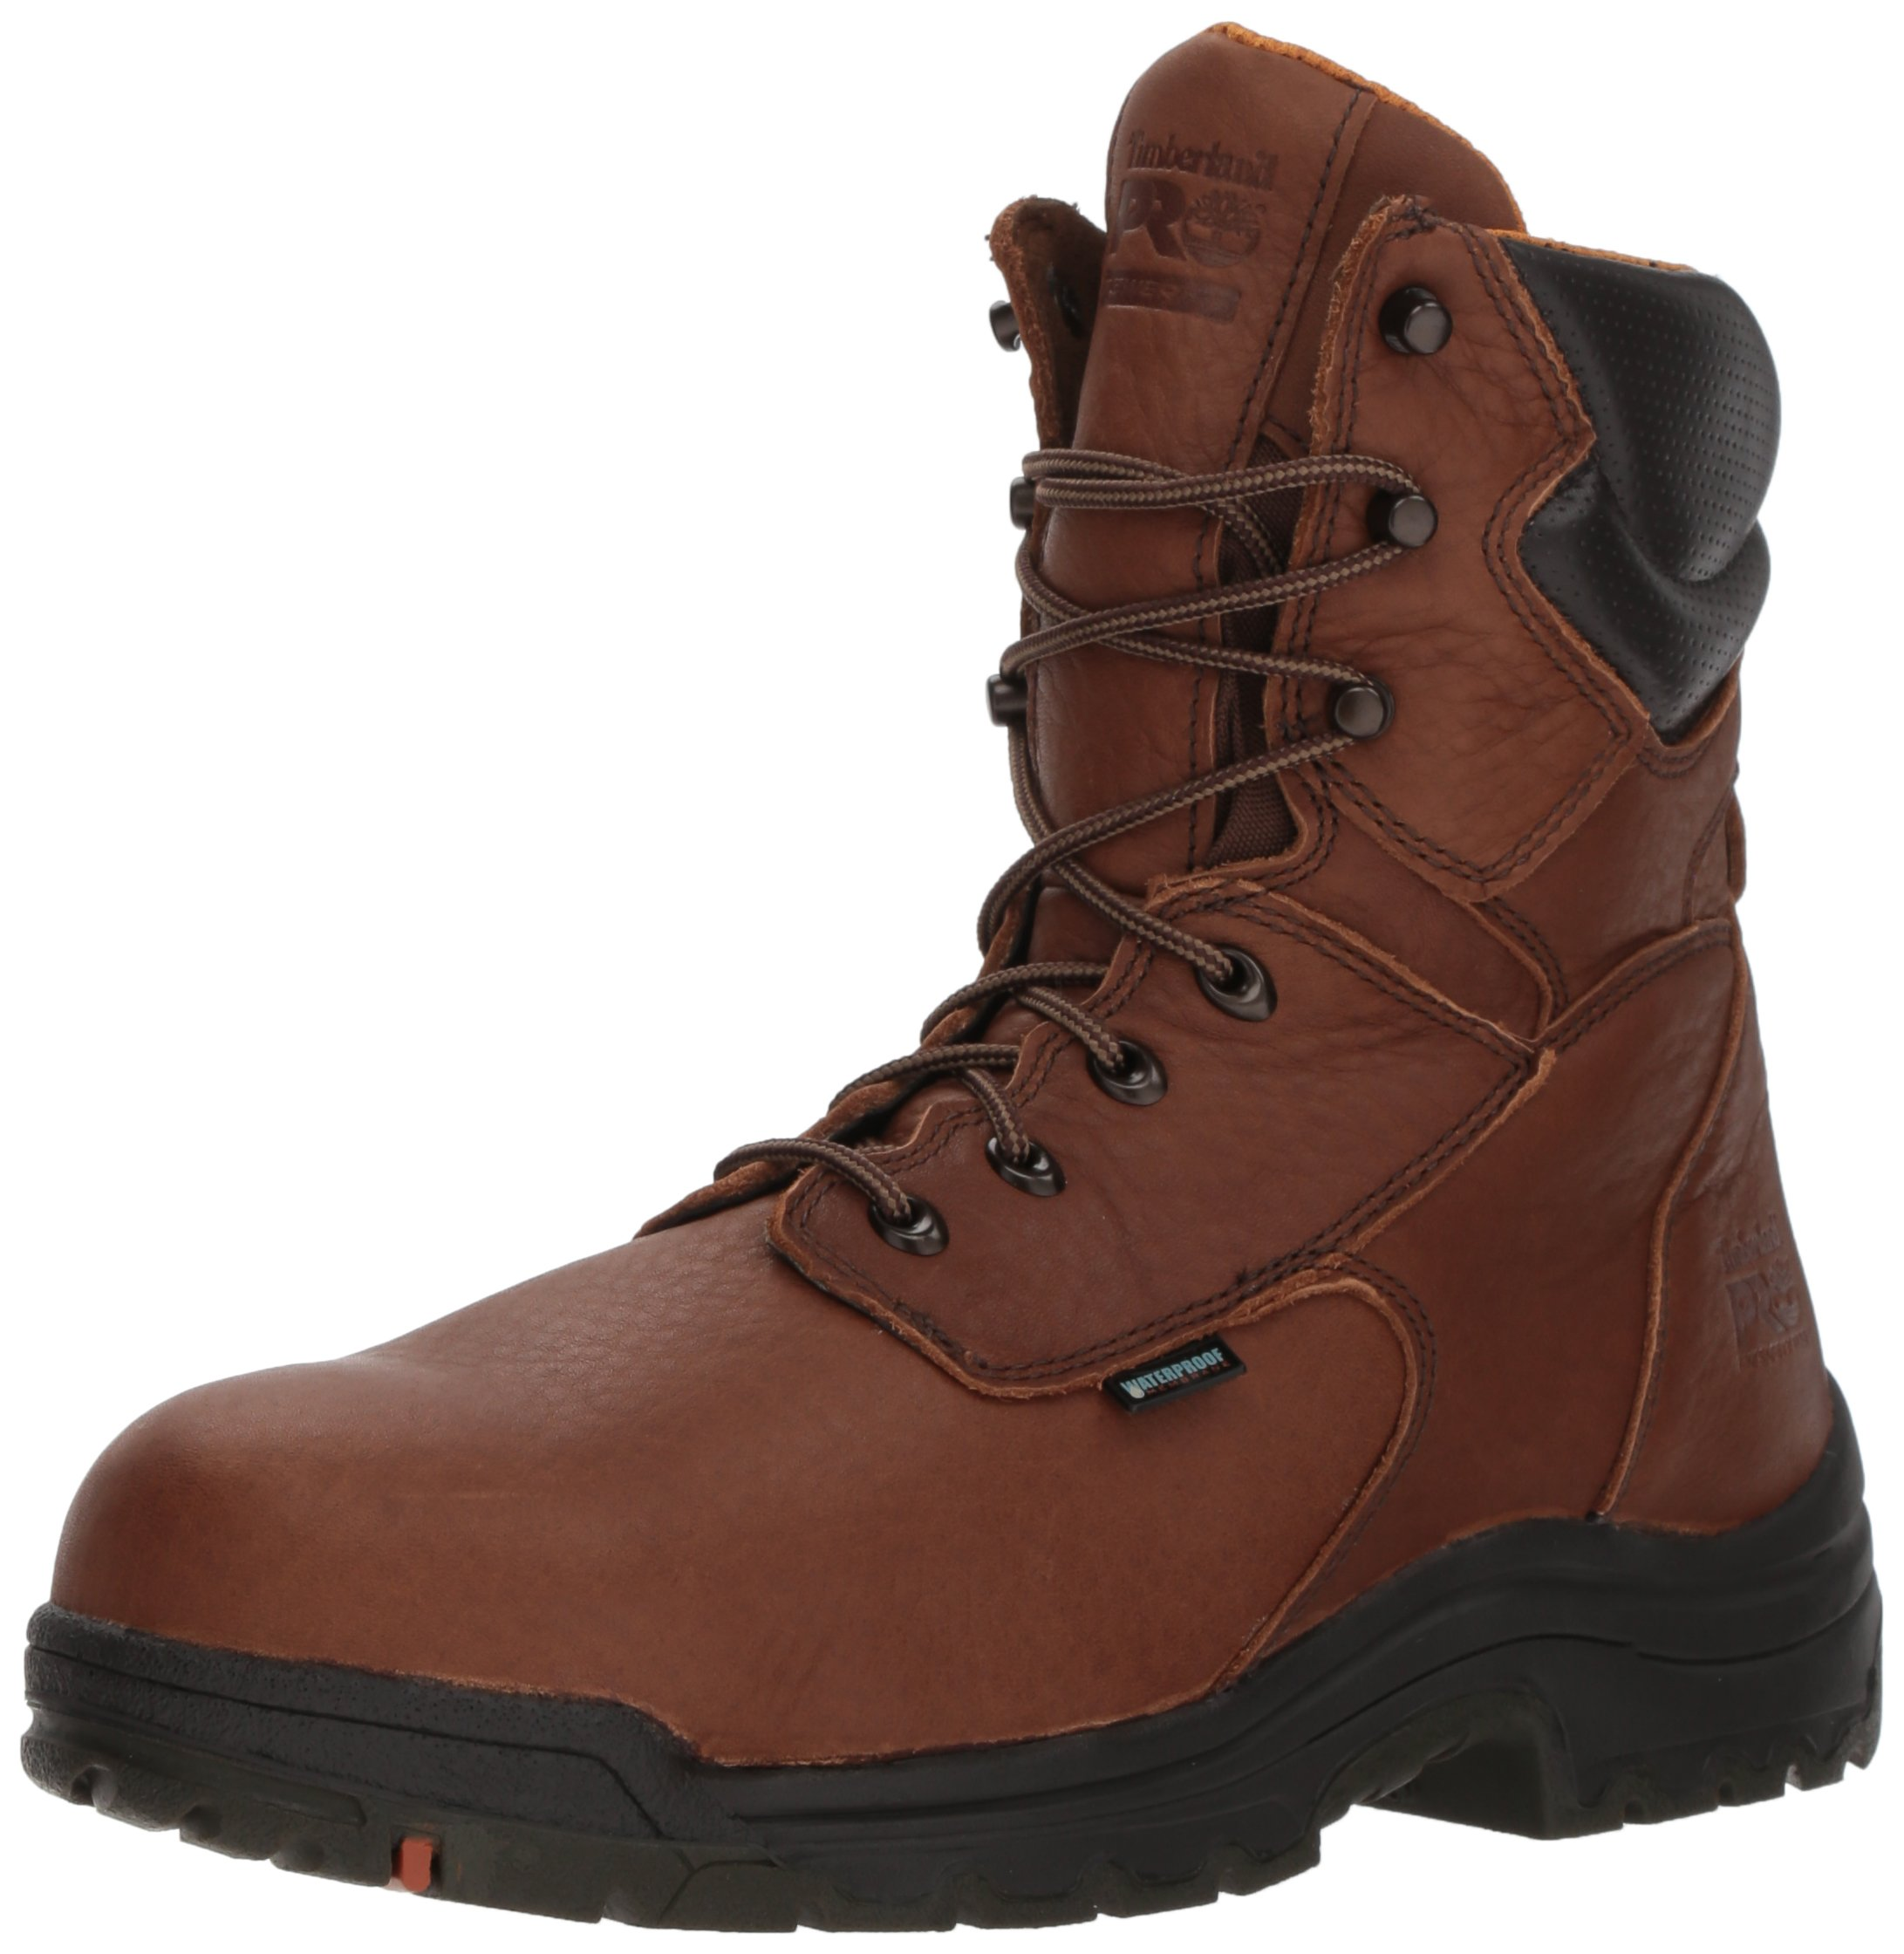 Timberland PRO Men's 47019 Titan 8'' Waterproof Safety Toe Boot,Brown,7 M by Timberland PRO